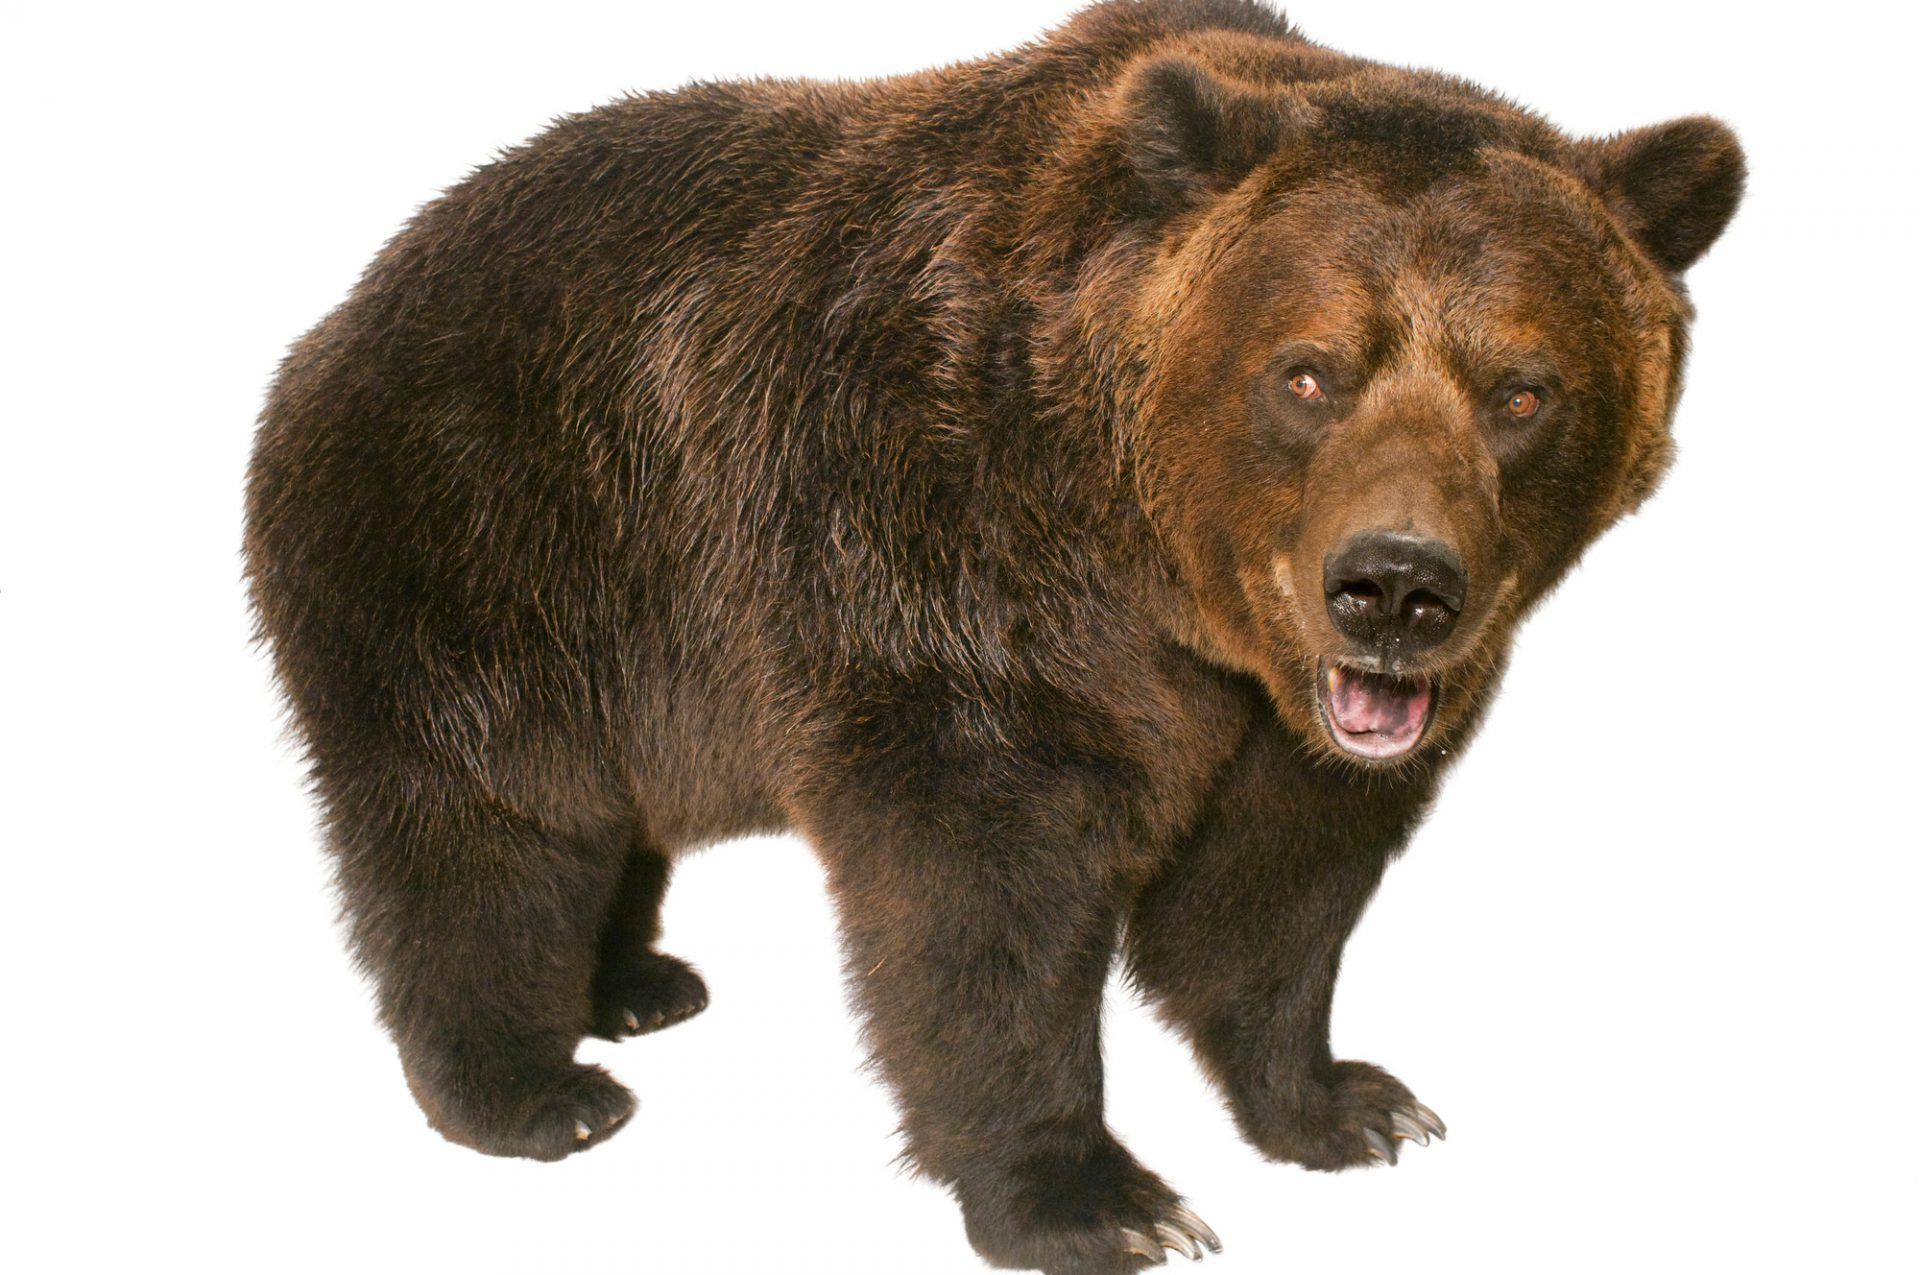 Picture of a grizzly bear (Ursus arctos horribilis) at the Sedgwick County Zoo